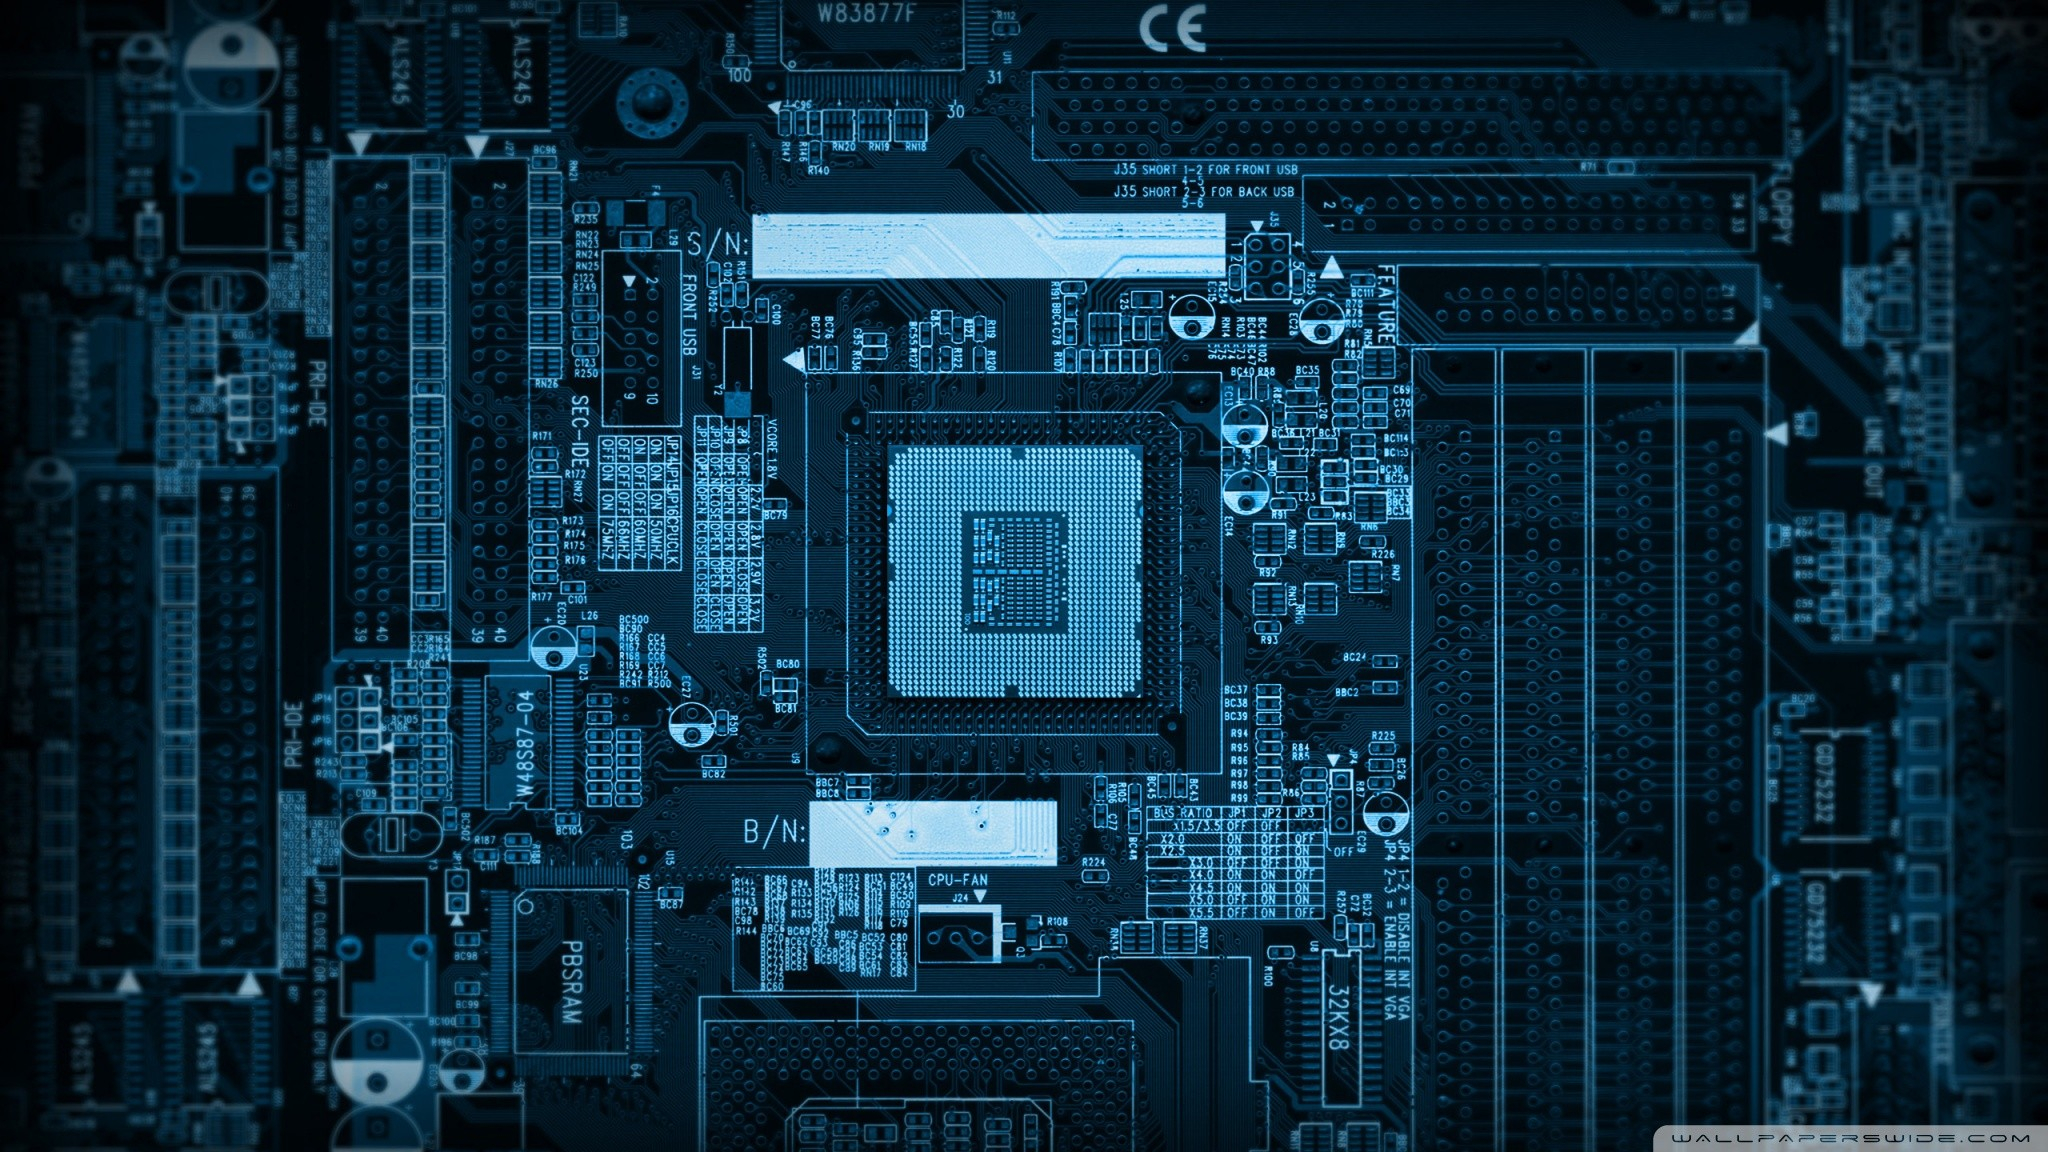 Motherboard HD Wallpaper 67 images 2048x1152